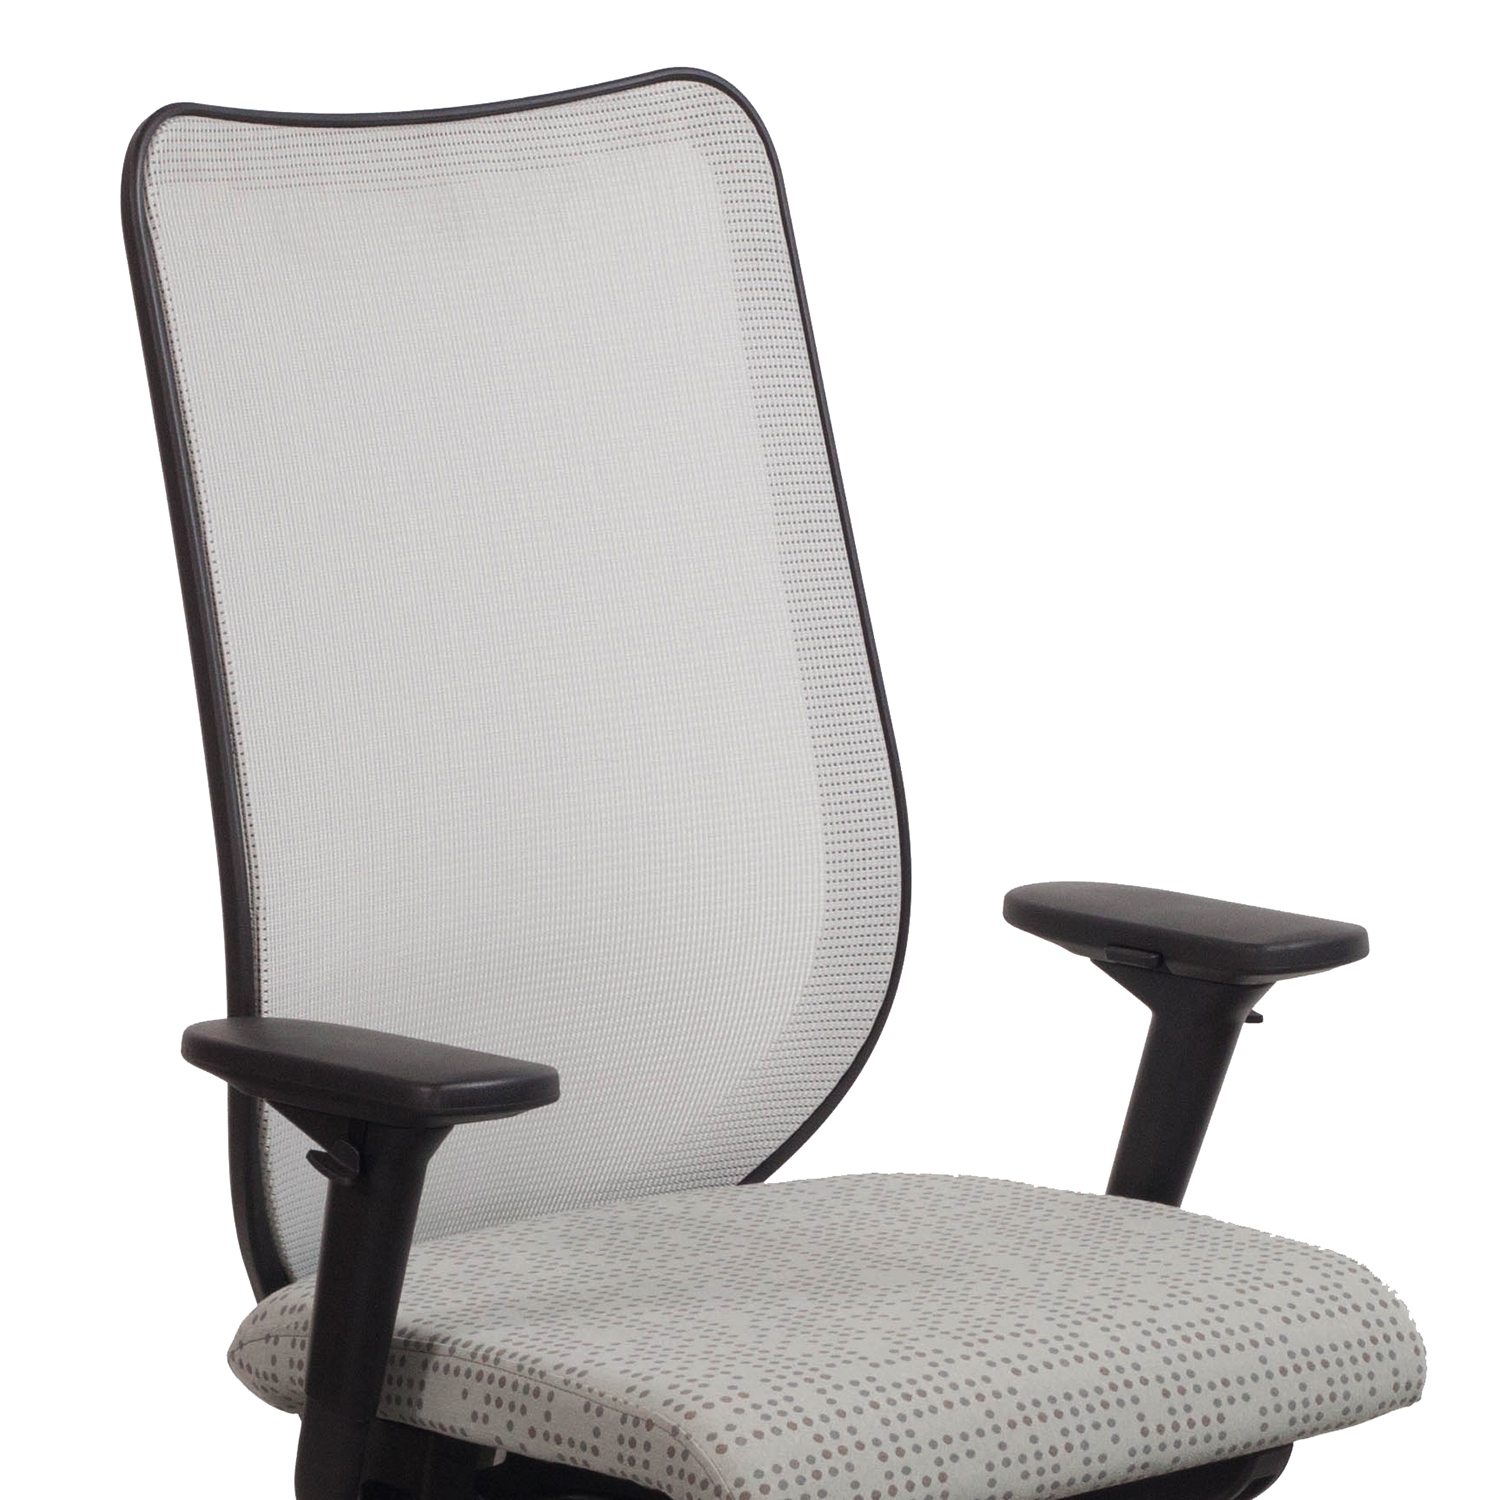 pewter chair outdoor double rocking hon nucleus used mesh back task seat dotty